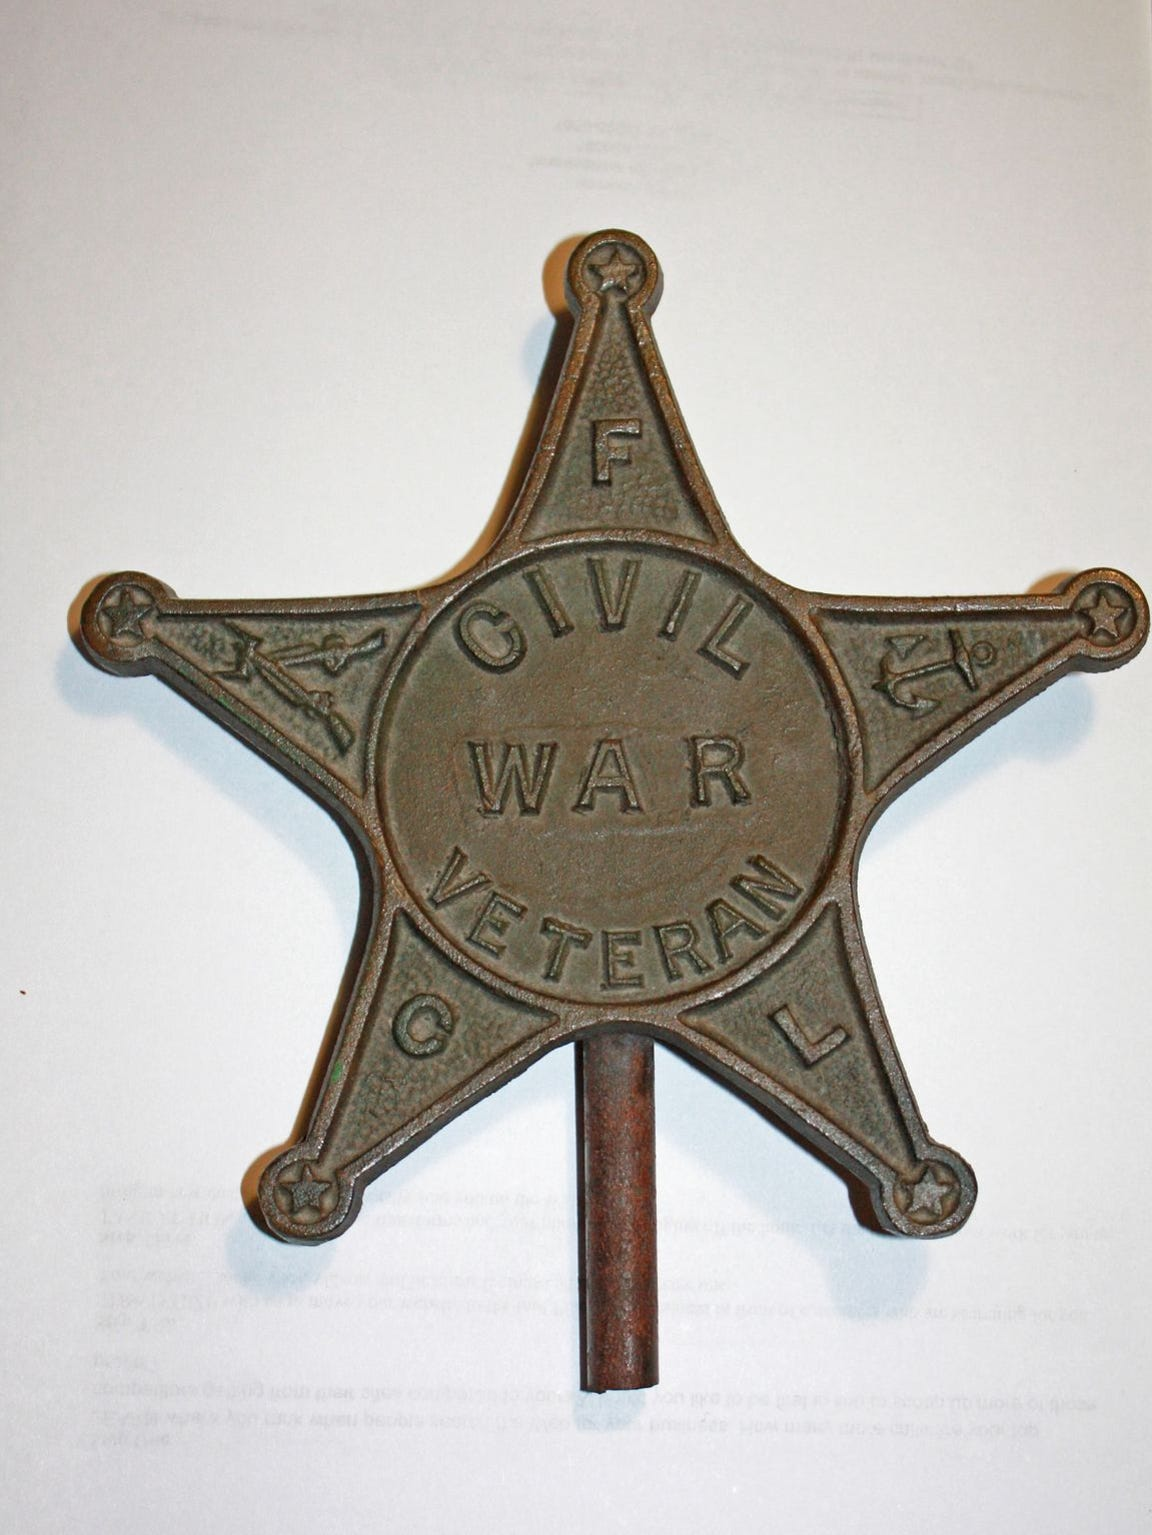 Thomas Moncrief's Civil War Veteran star